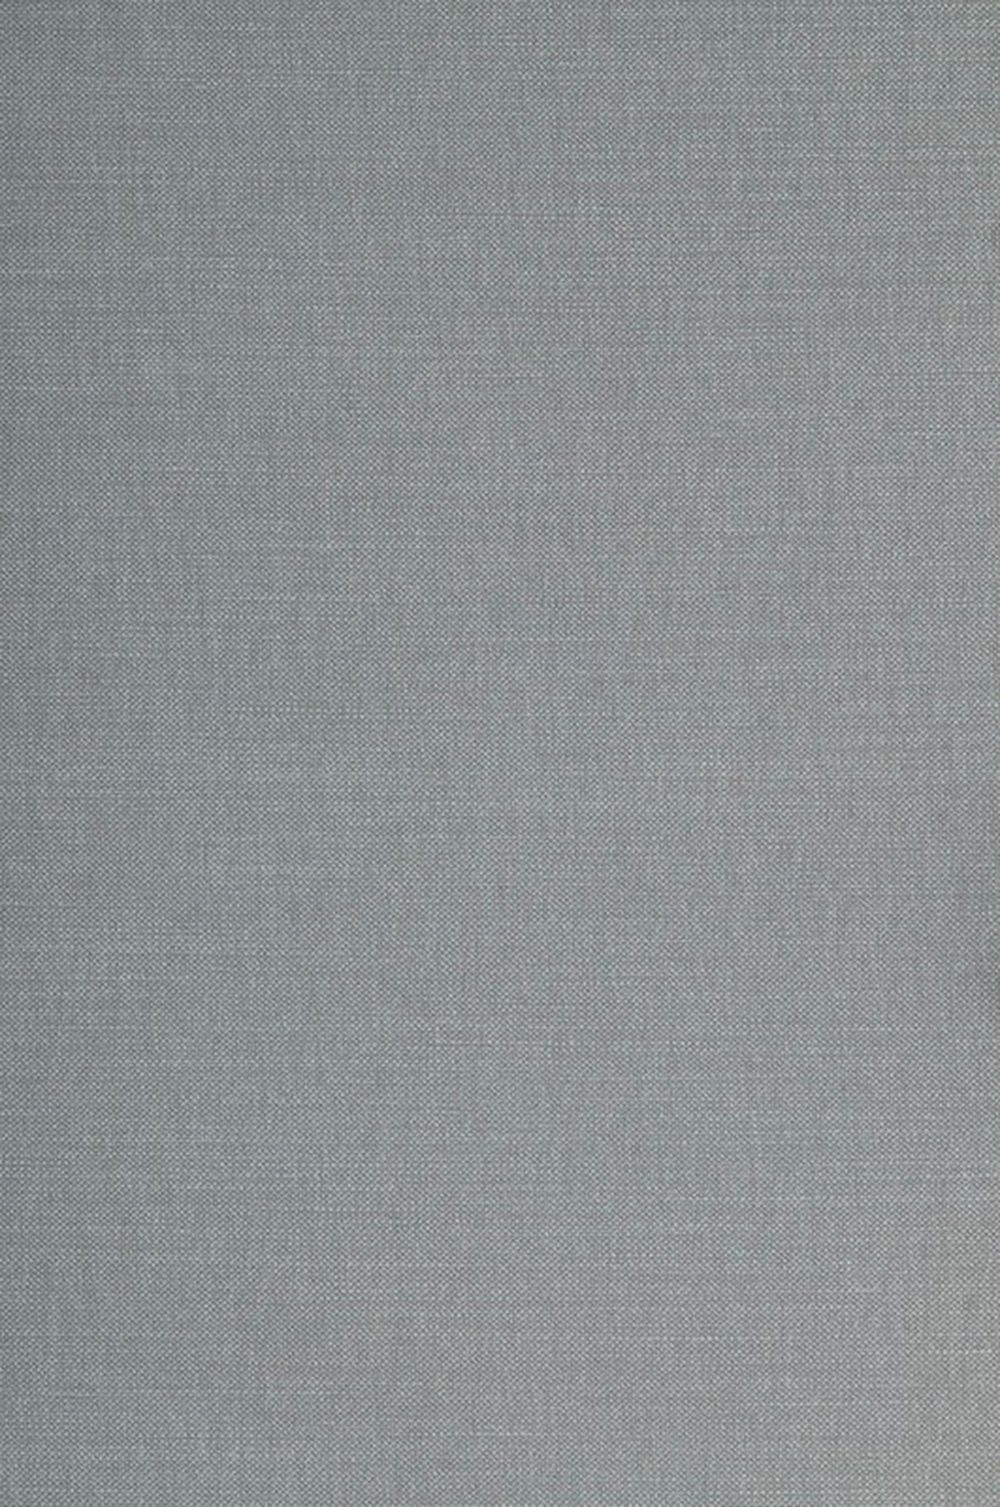 Photo of the fabric Urban Zinc swatch by James Dunlop. Use for Upholstery Medium Duty, Accessory. Style of Plain